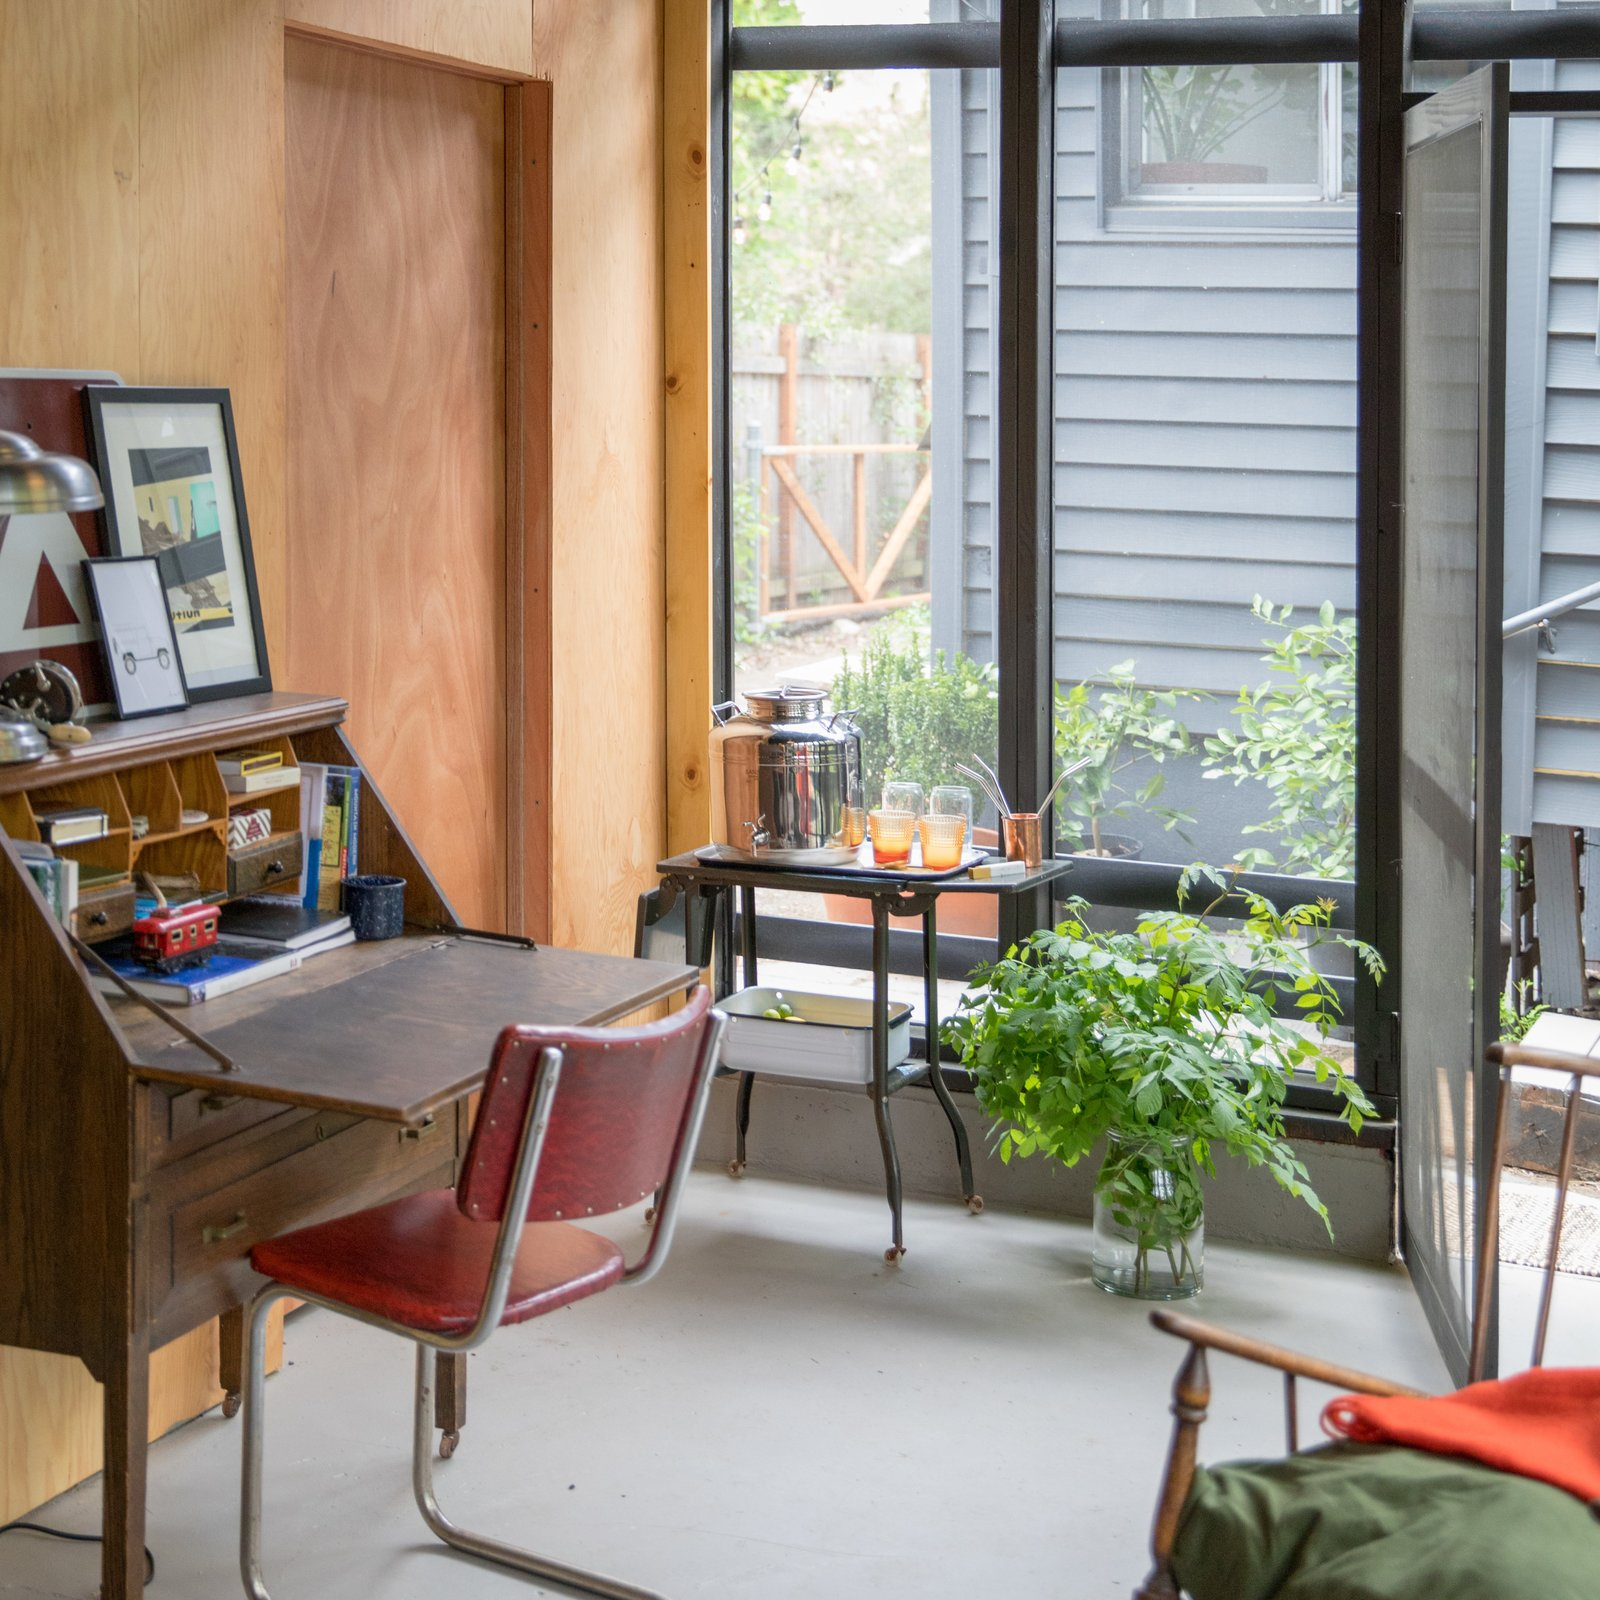 Garage, Garage Conversion, and Detached Garage The new dividing wall was sheathed in sanded pine plywood and includes a door for easy access to the other side of the garage.  Best Garage Photos from Budget Breakdown: A Weekend DIY Turns a Neglected Garage Into a Backyard Hangout For $13K